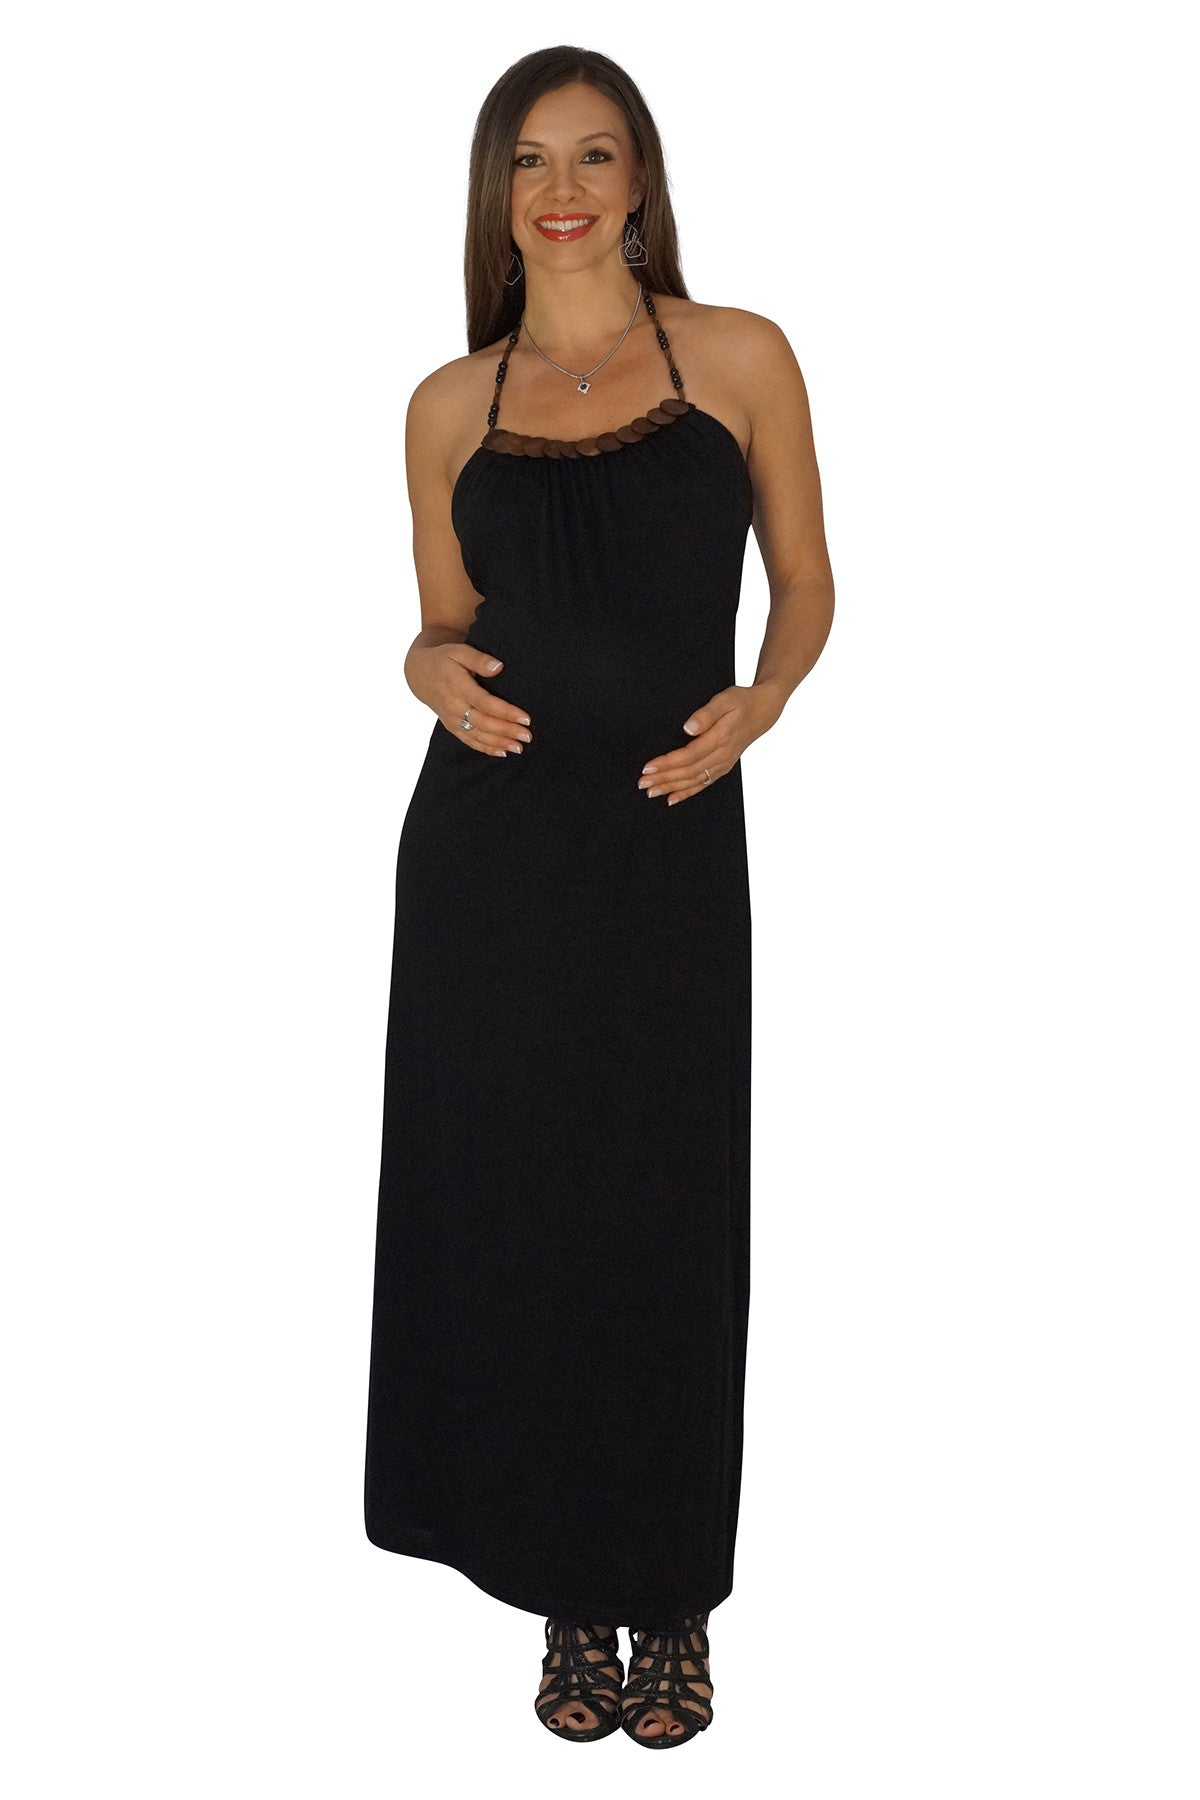 The maternity clothes clearance at Gap is the perfect place to find amazing outfits for every occasion. Maternity Clothes Clearance Gap Collection When you are shopping for discount maternity clothing, we offer the best value for your money.